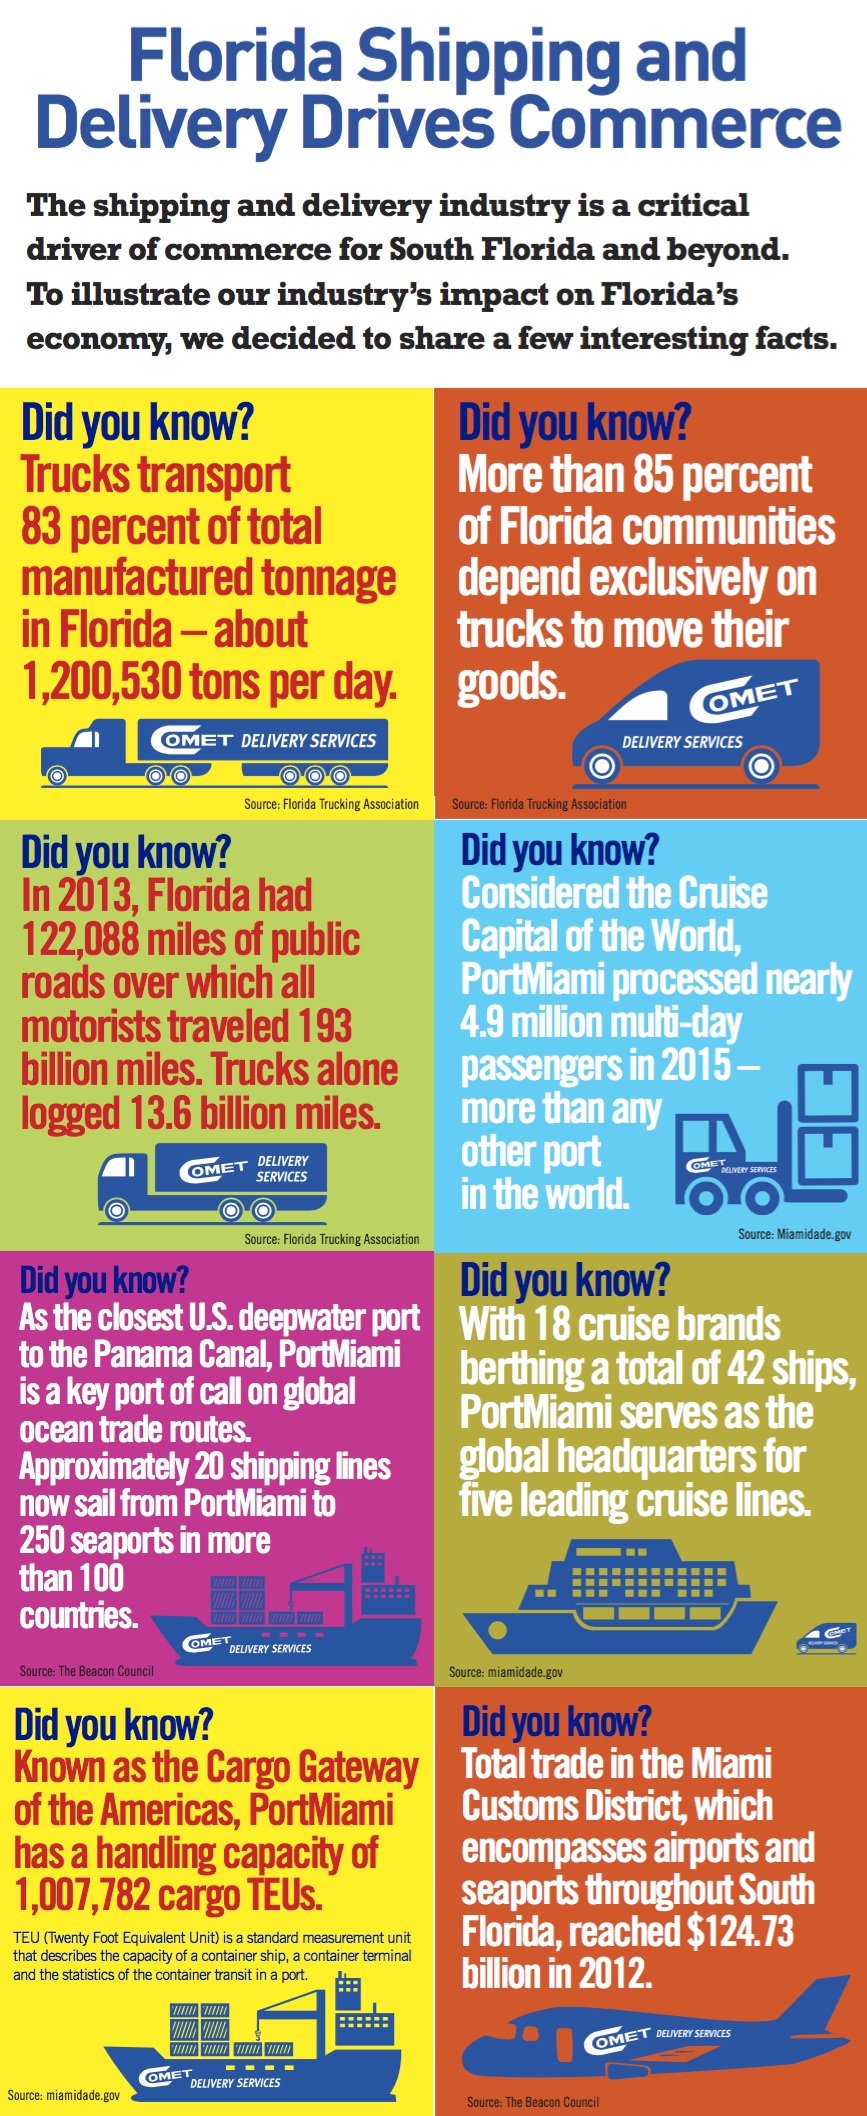 Florida Shipping and Delivery Drives Commerce